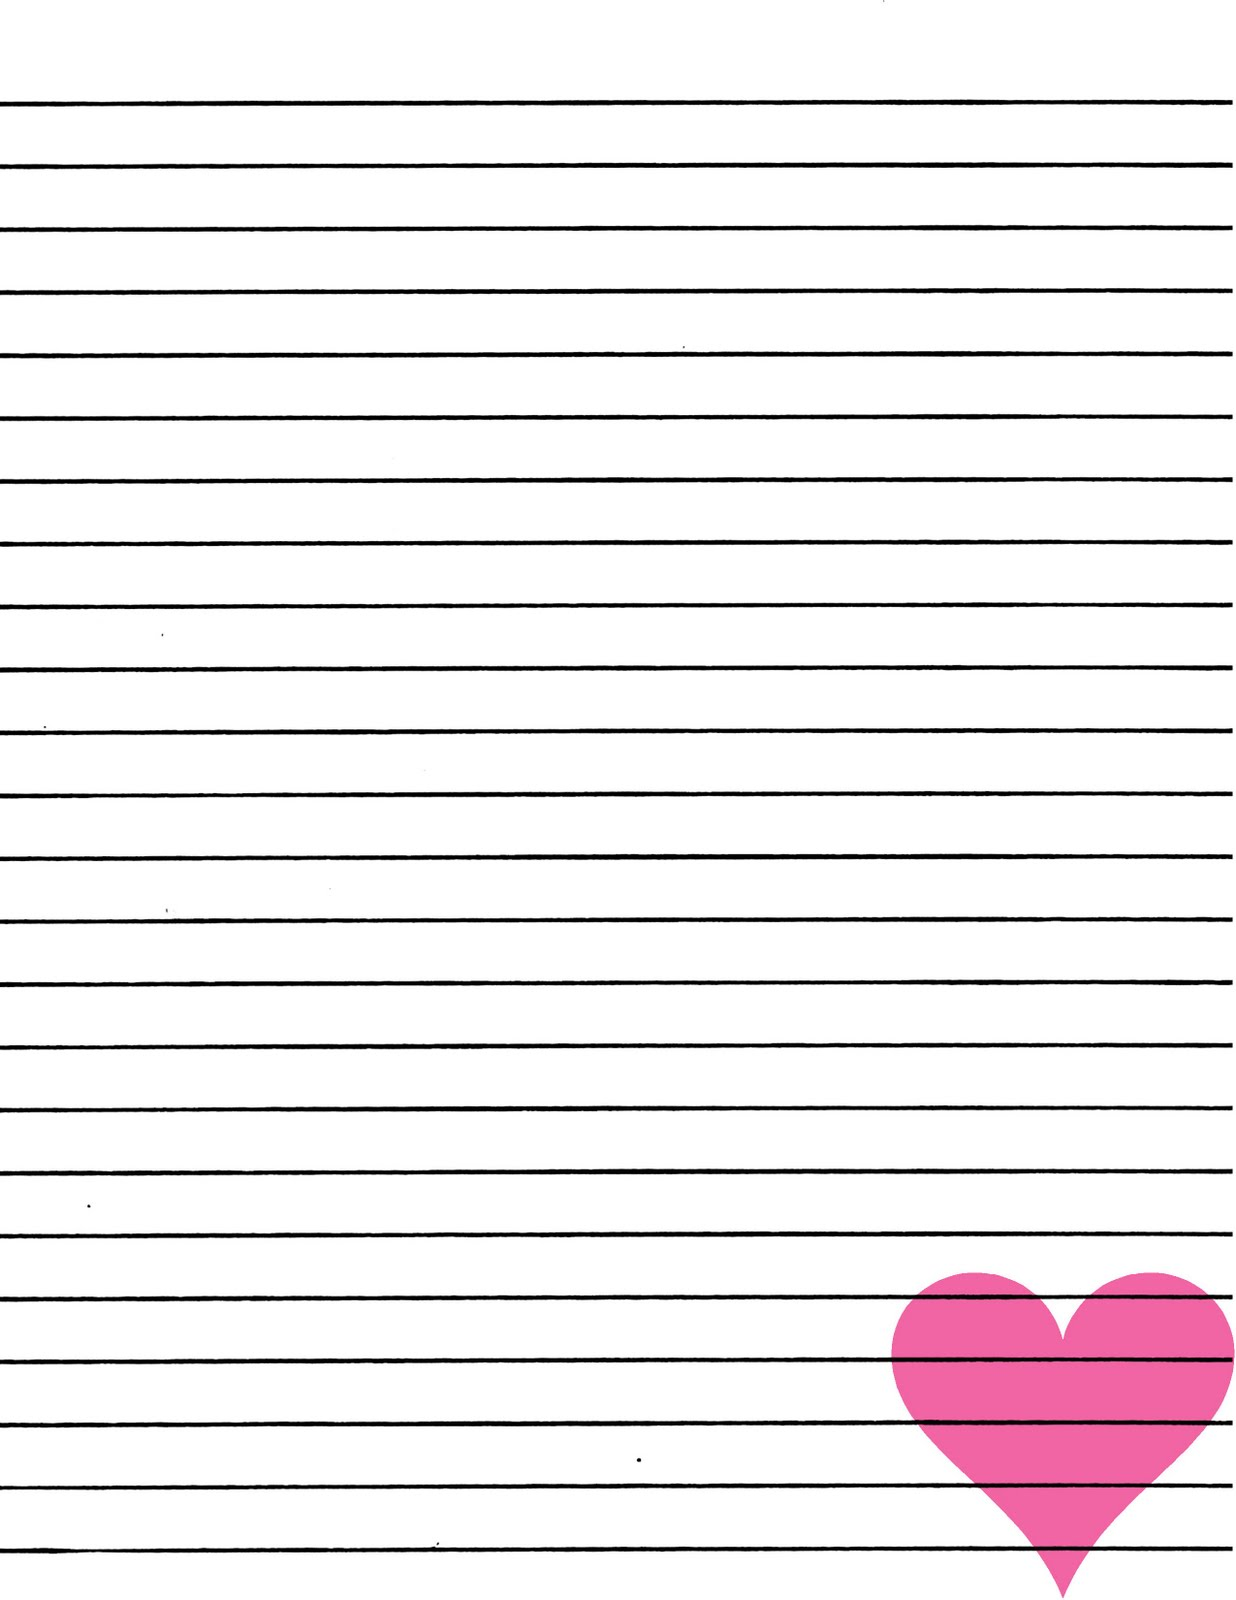 5 Images of Free Printable Note Paper